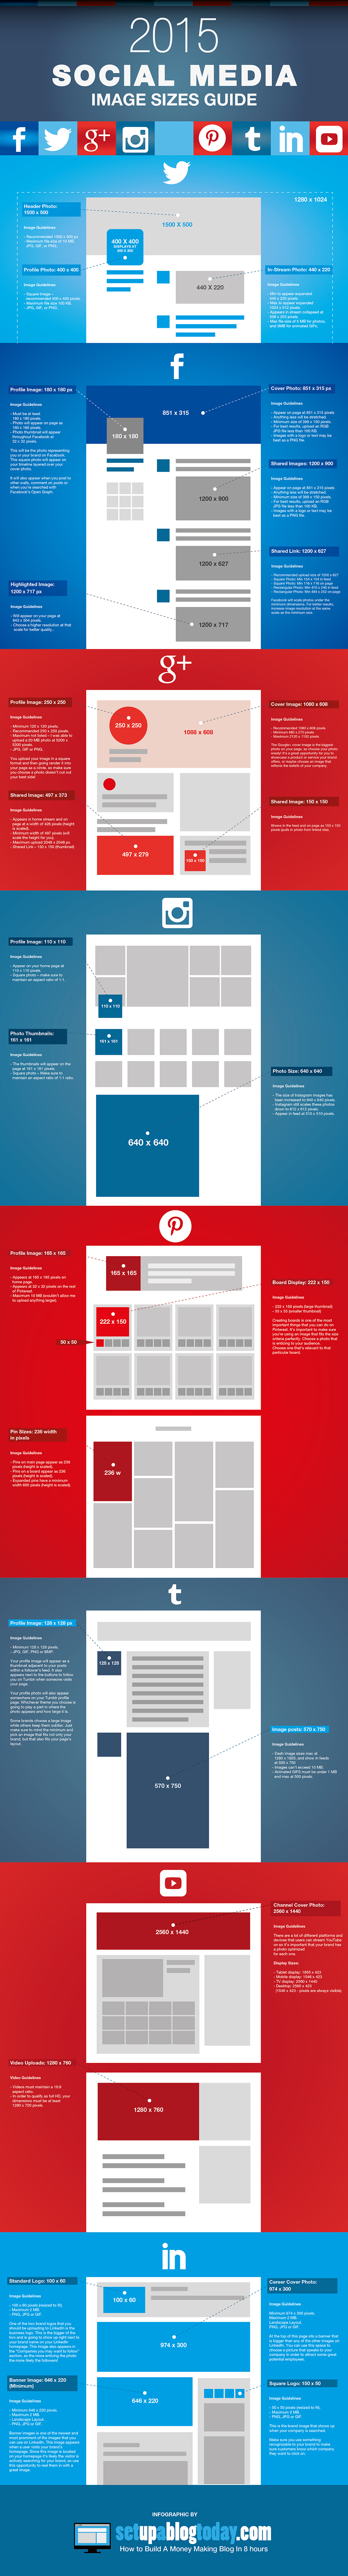 2015 Social Media Image Size Guide for Luxury Real Estate